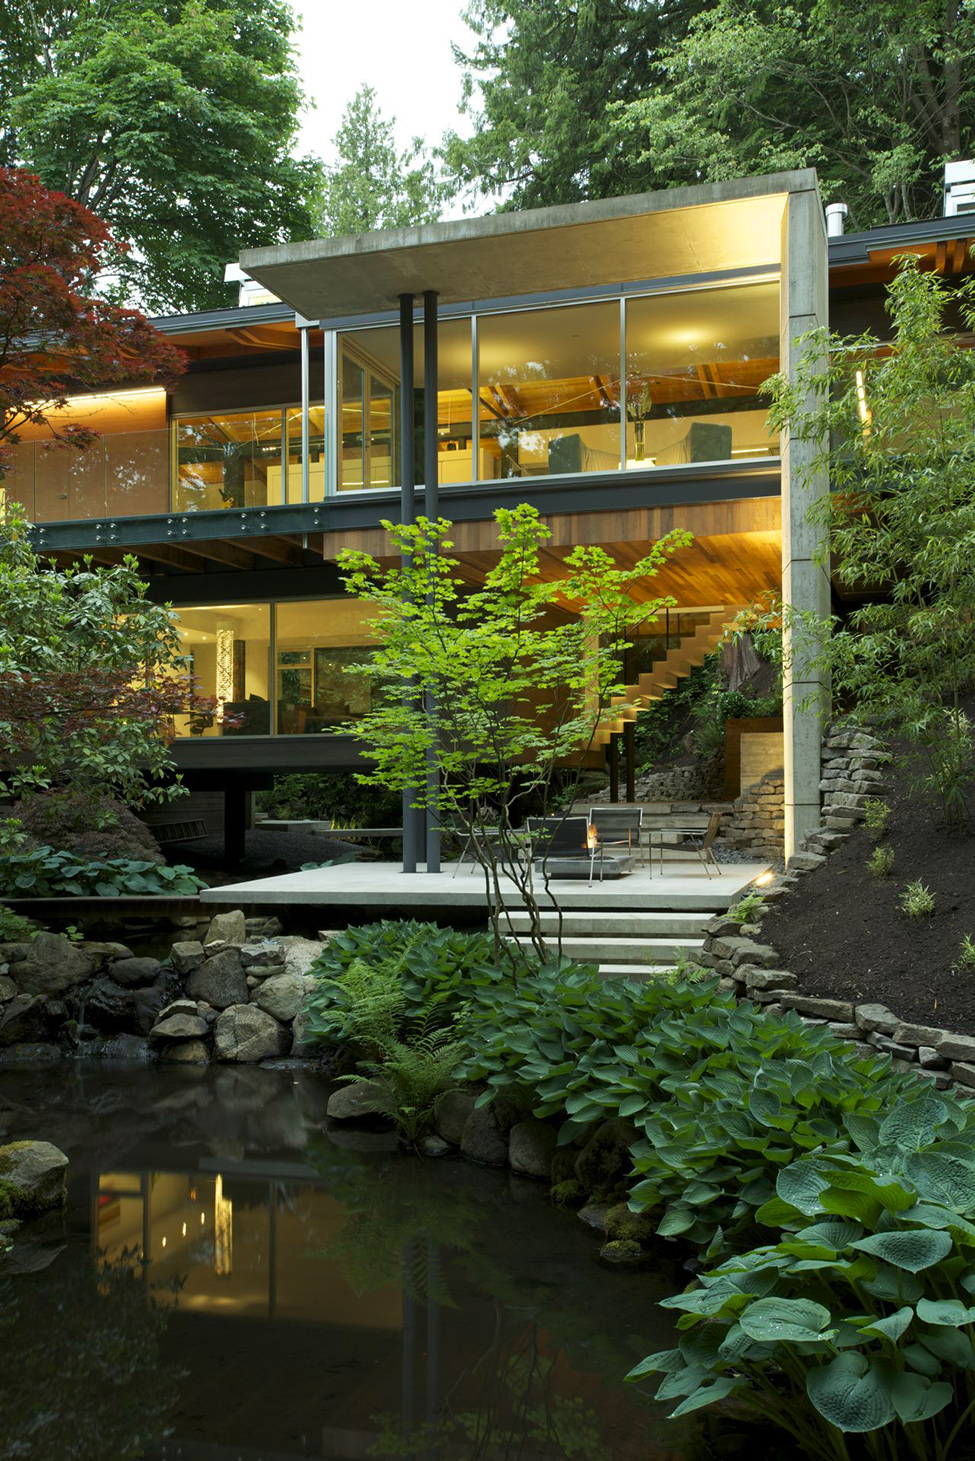 The Perfect Balanced Home: Southlands Residence Surrounded by Lush Vegetation in Vancouver